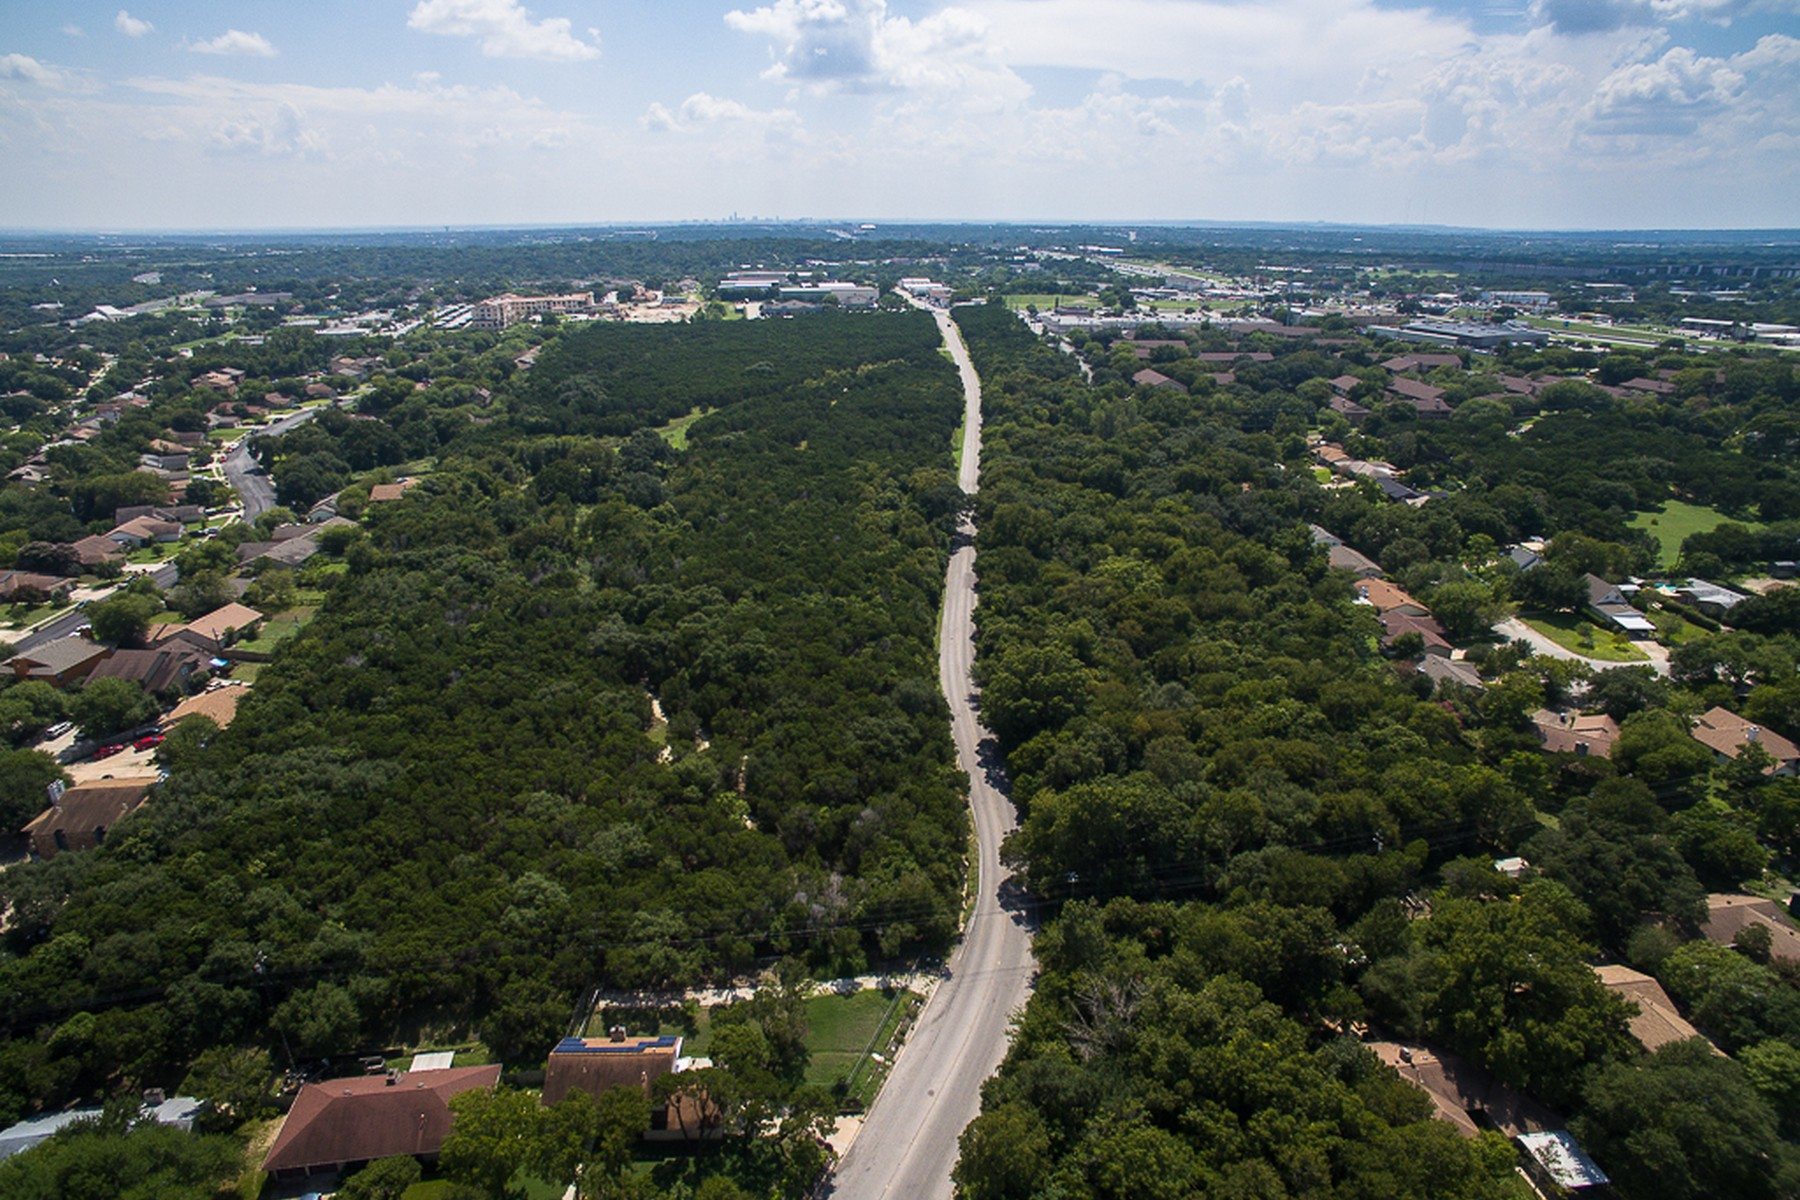 Commercial for Sale at 38.128 ± acres Braker & Wedgewood Lots 11300 Wedgewood Dr Austin, Texas 78753 United States